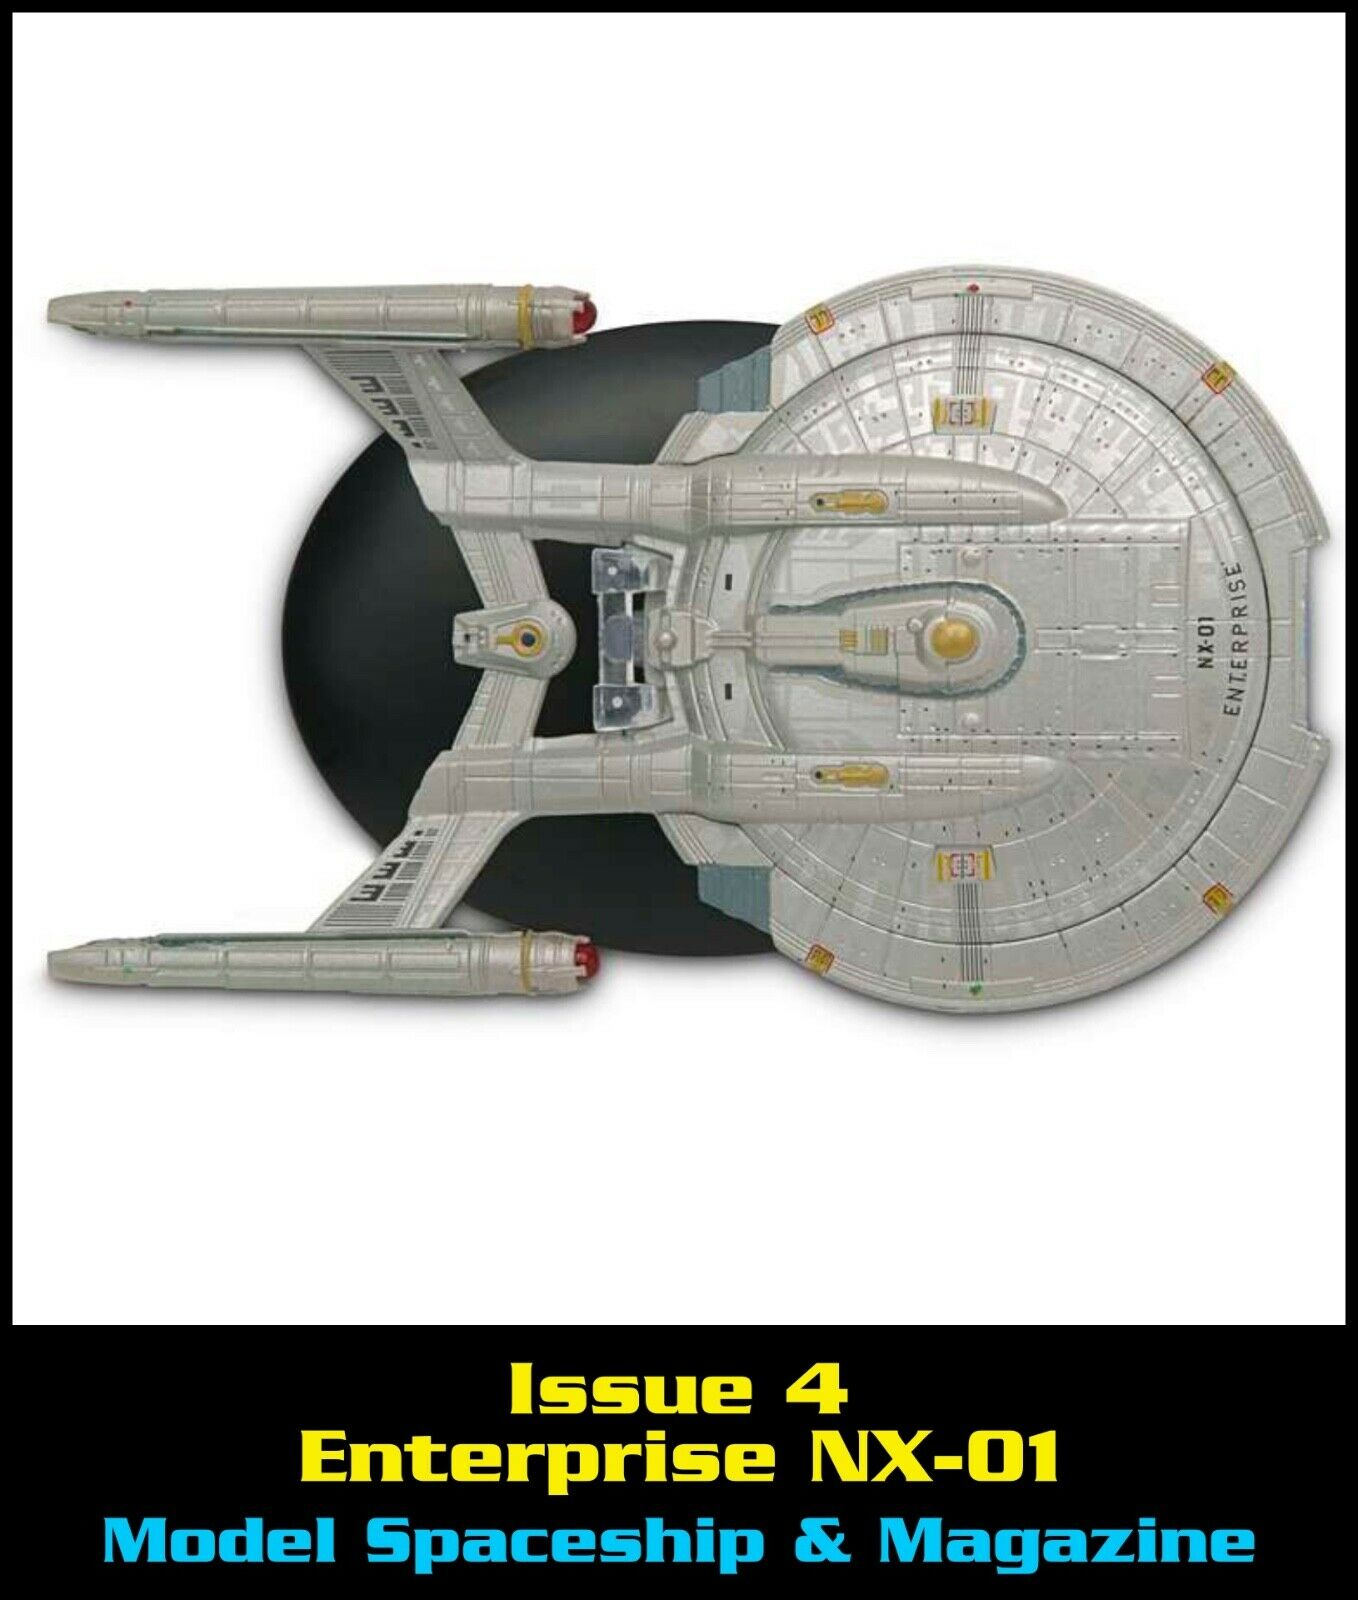 Issue 4: Enterprise NX01